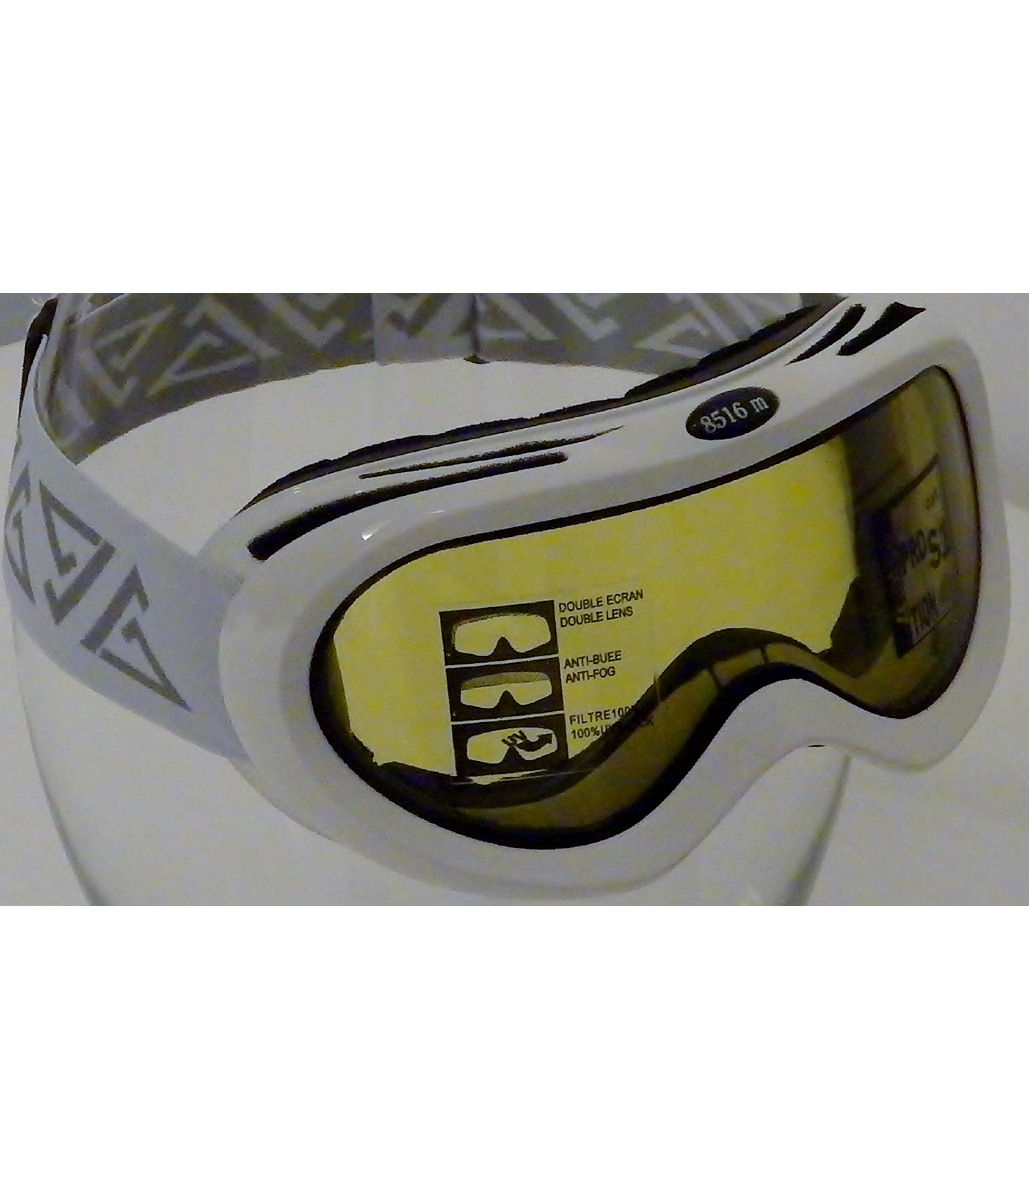 SKI GOGGLES LAMBADA FOR WOMAN